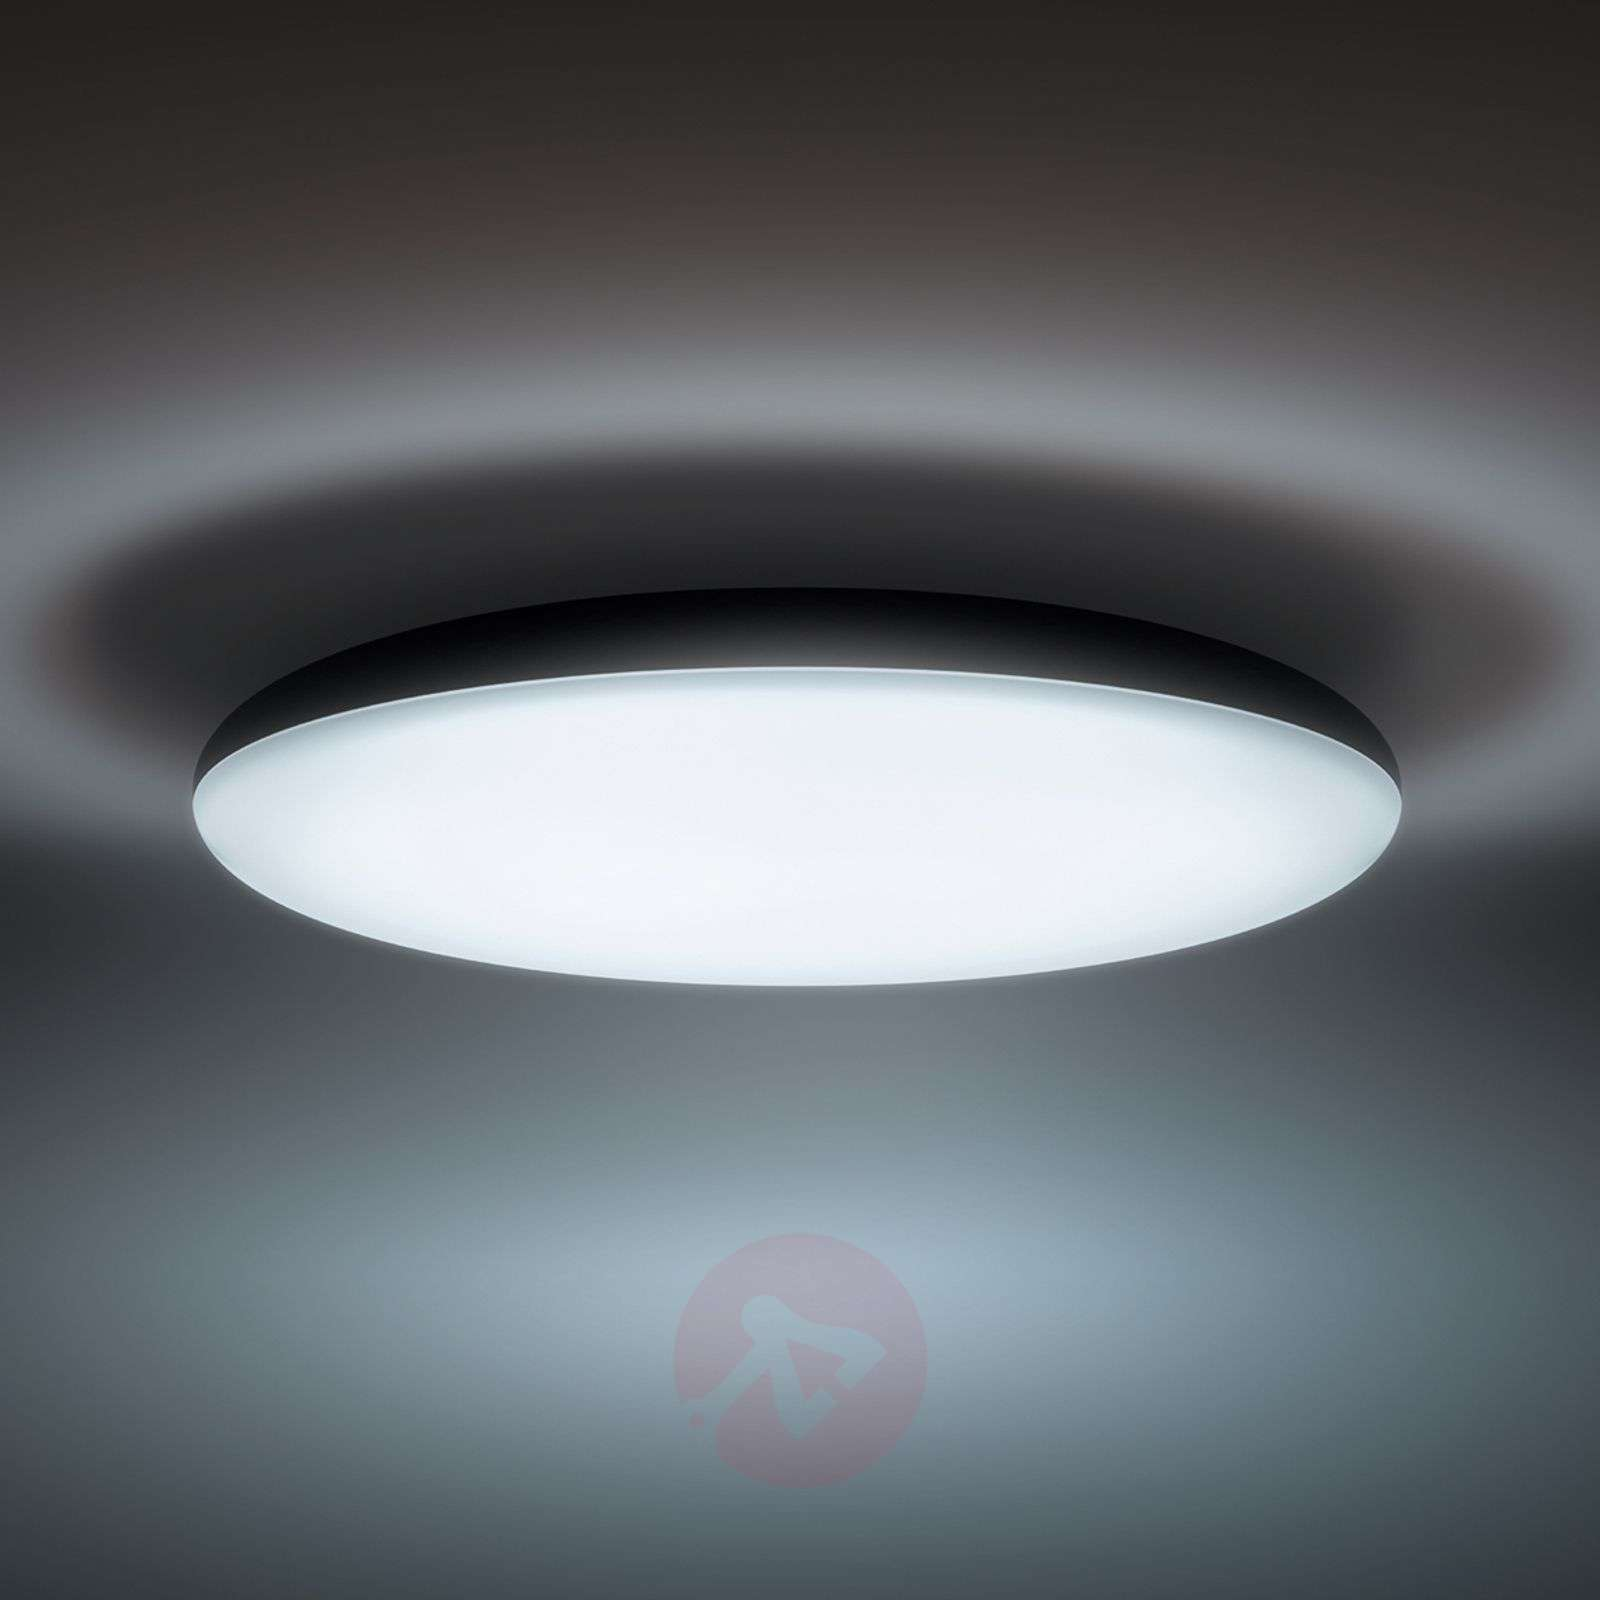 Philips Hue LED ceiling light Cher with dimmer-7532056-01